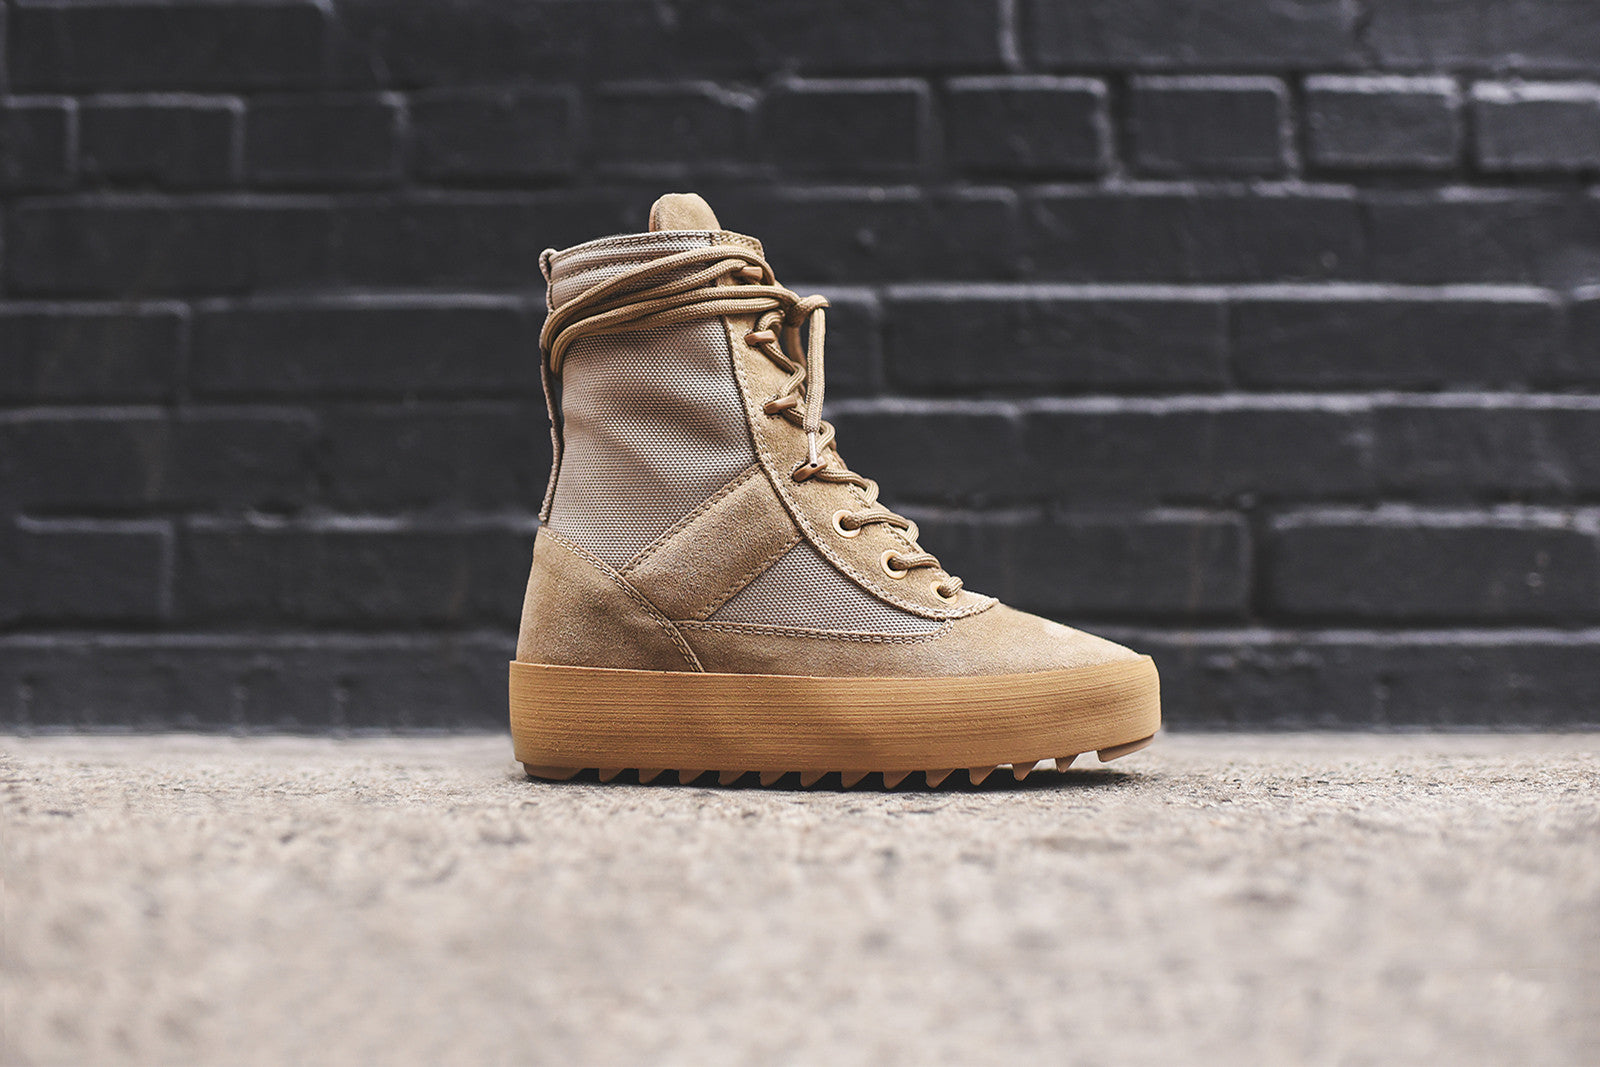 Yeezy WMNS Military Boot - Rock